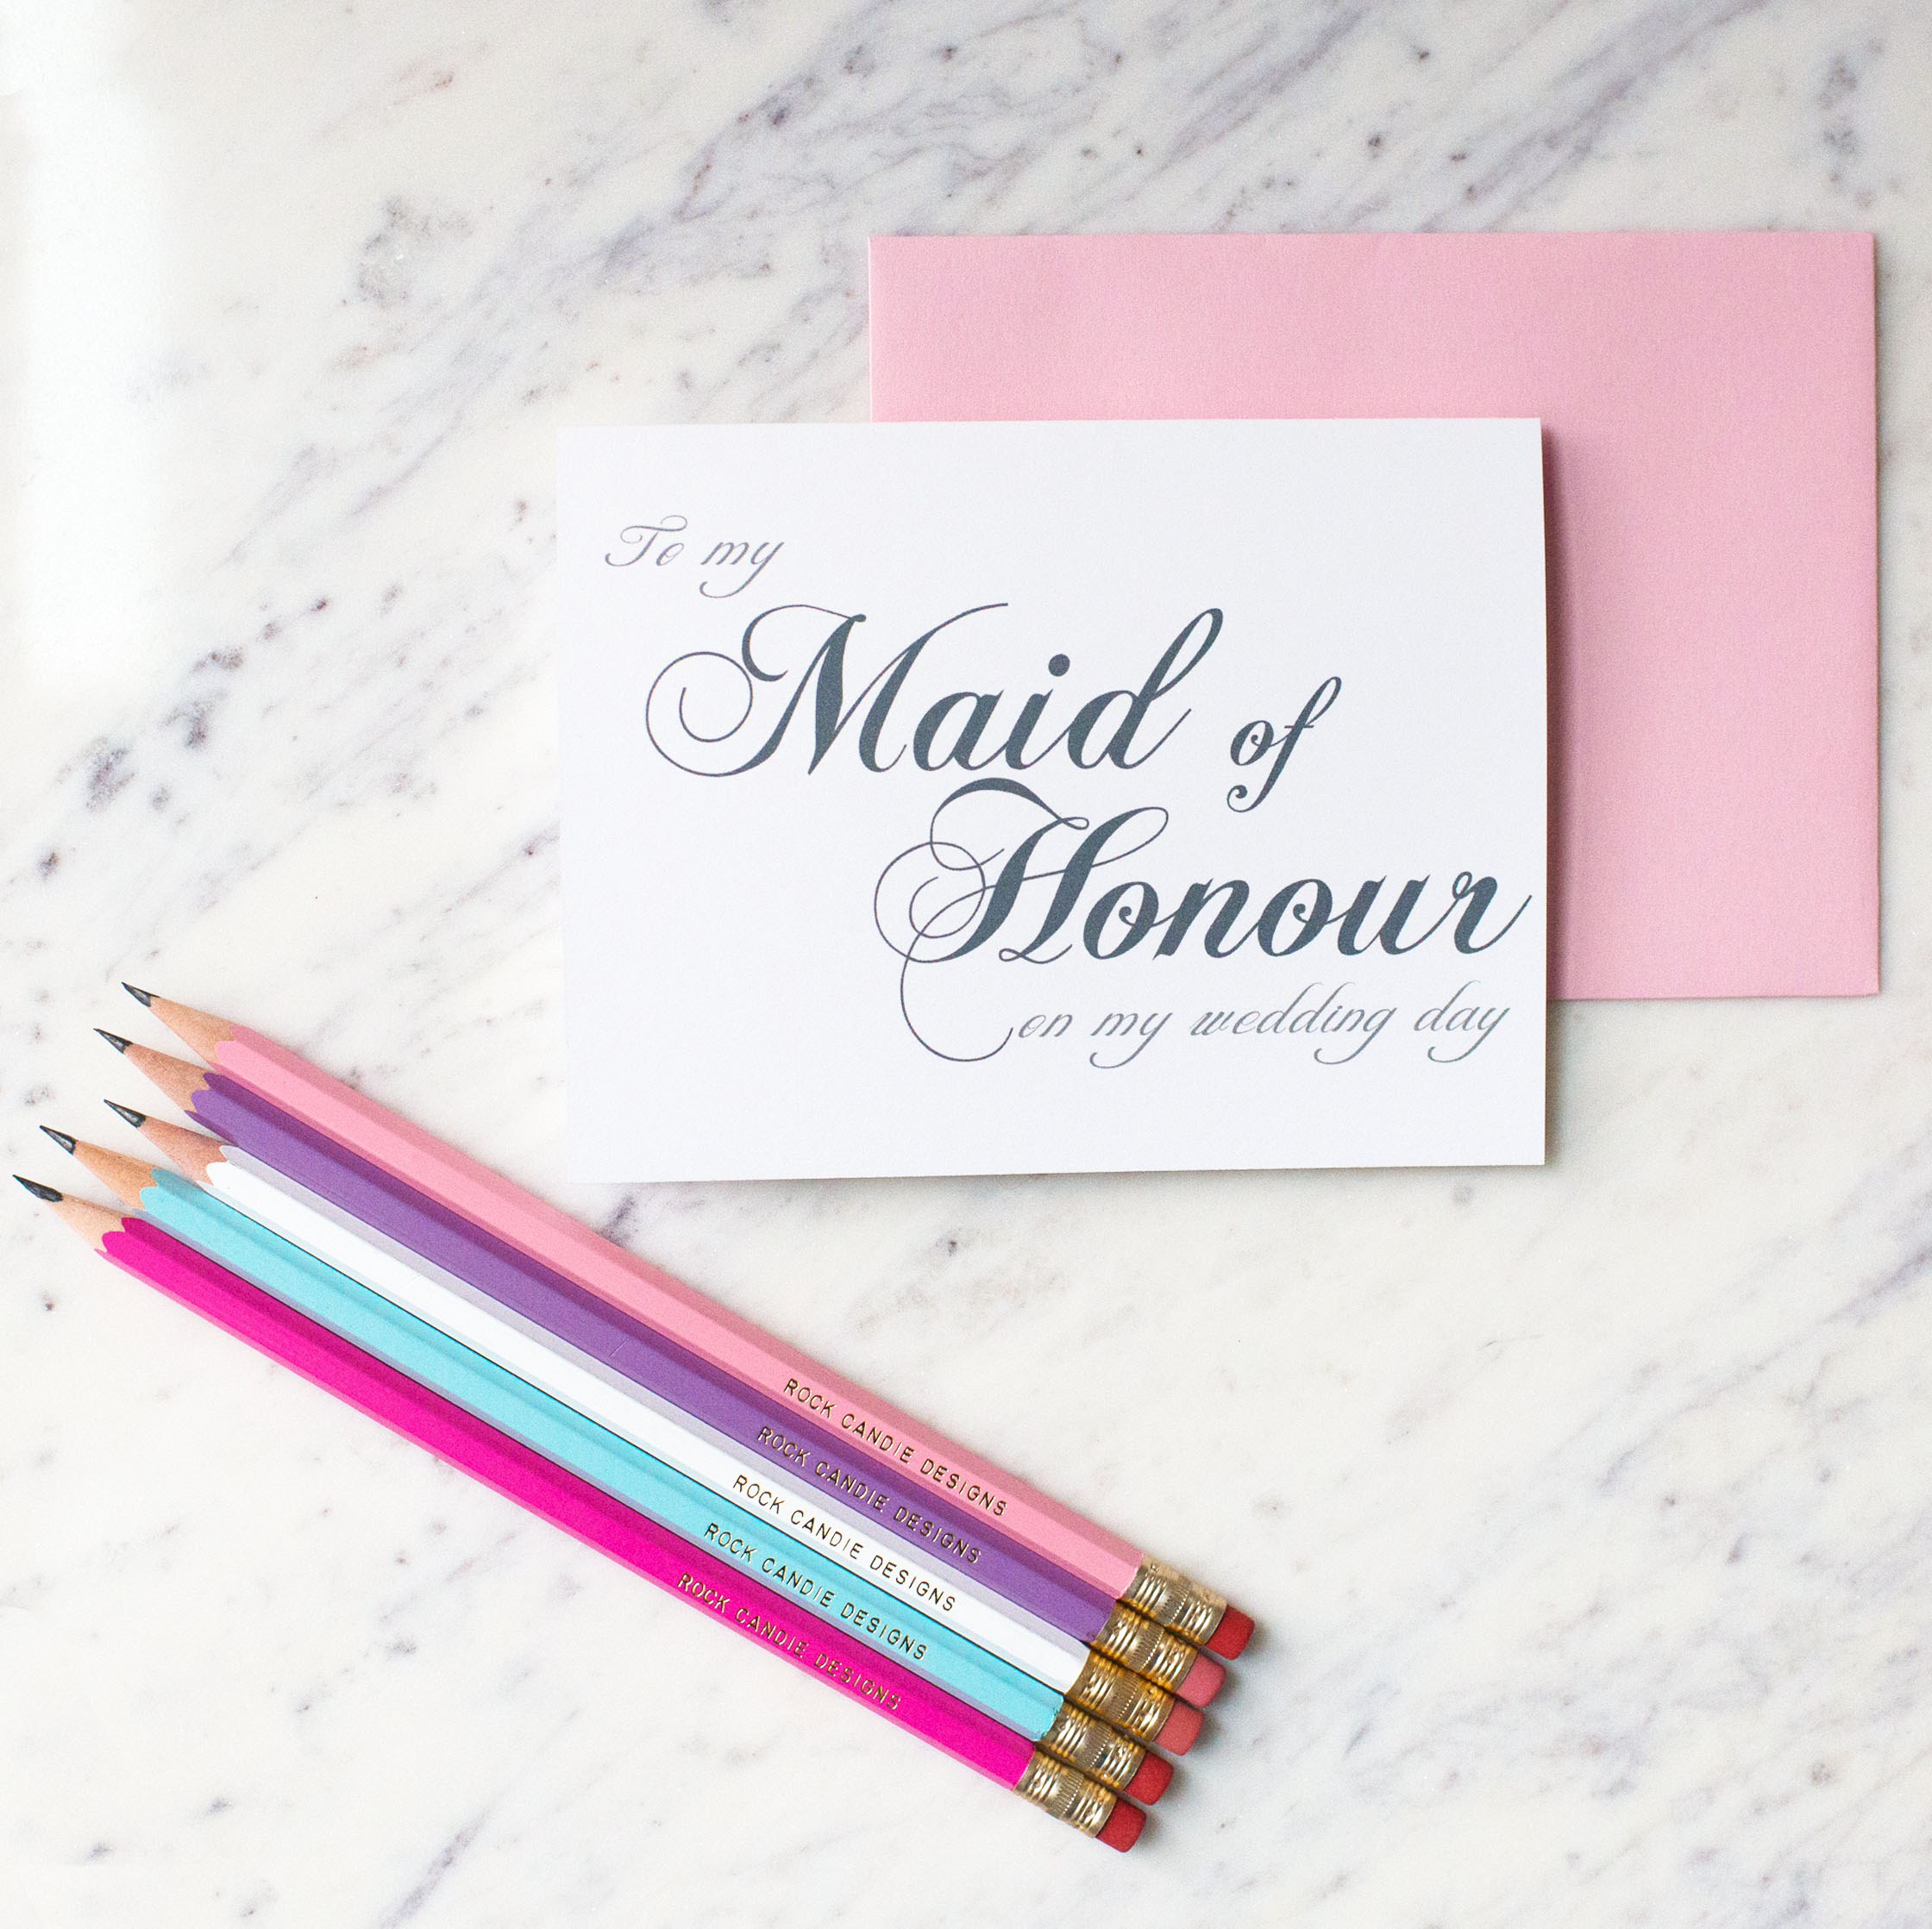 To My Maid of Honour On My Wedding Day Card